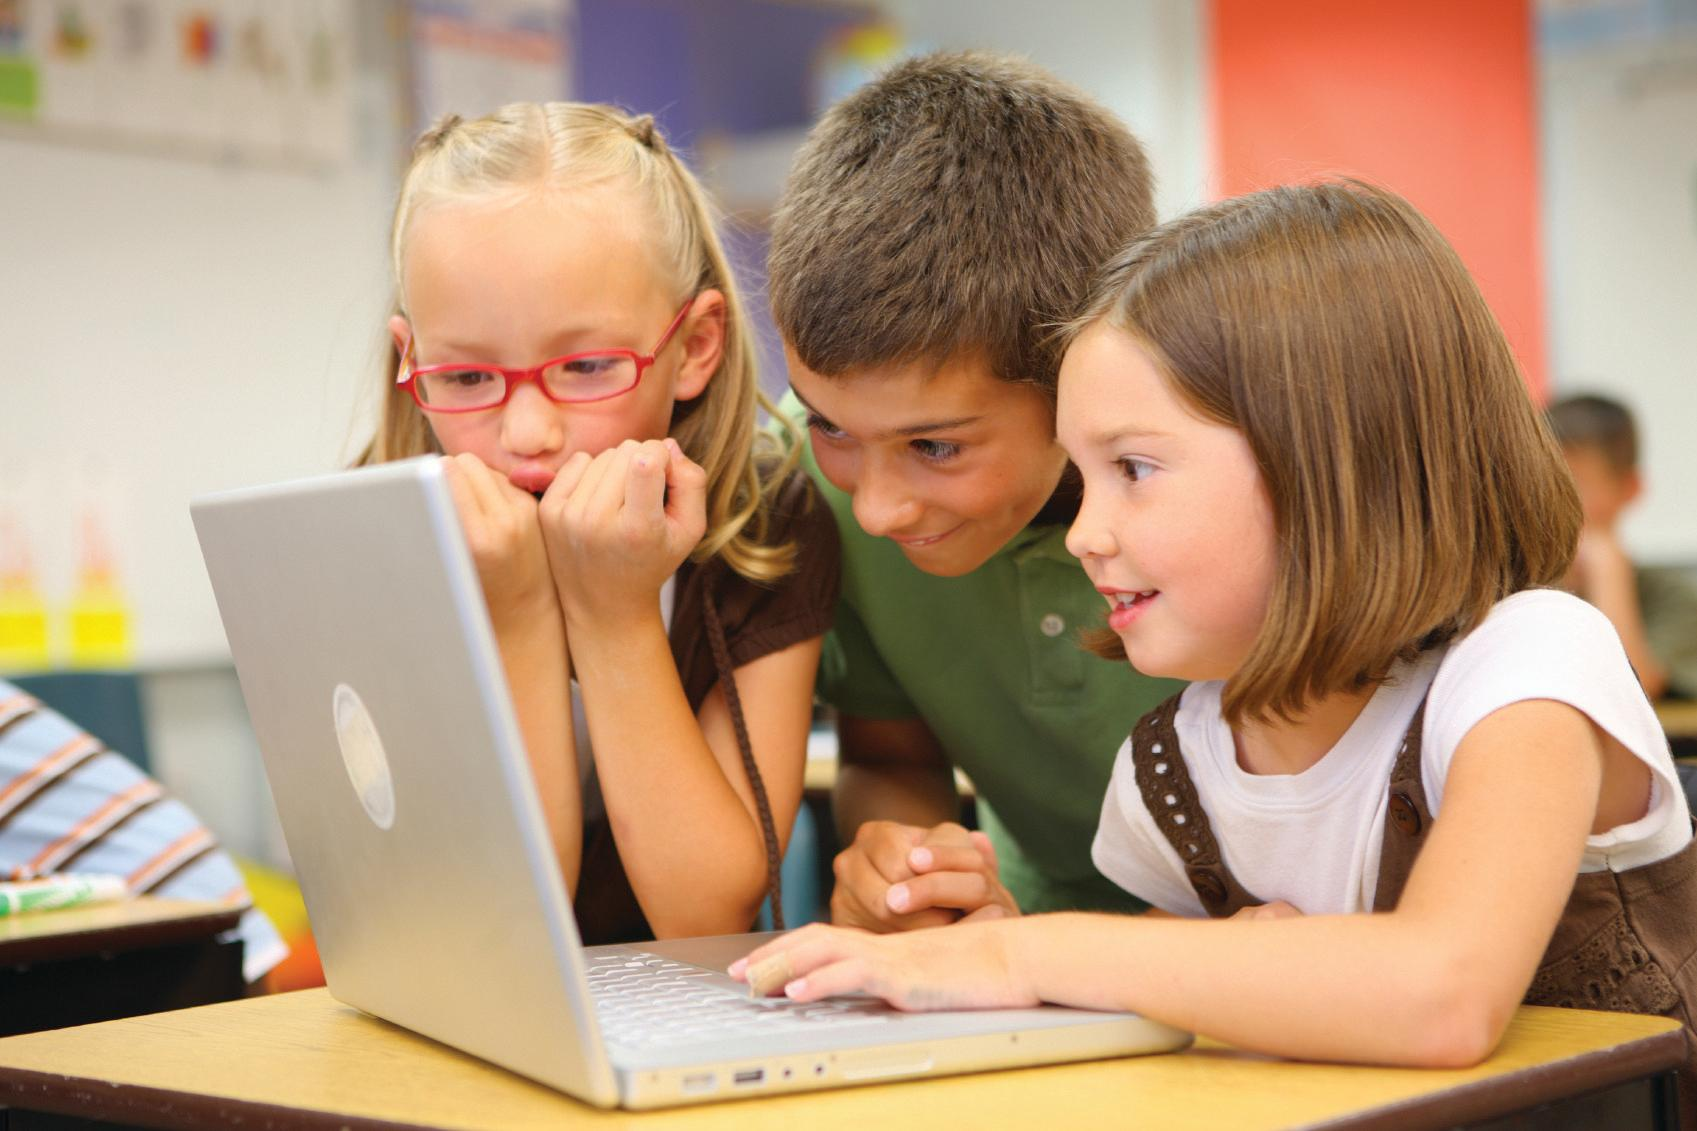 Launch Code After School image 6